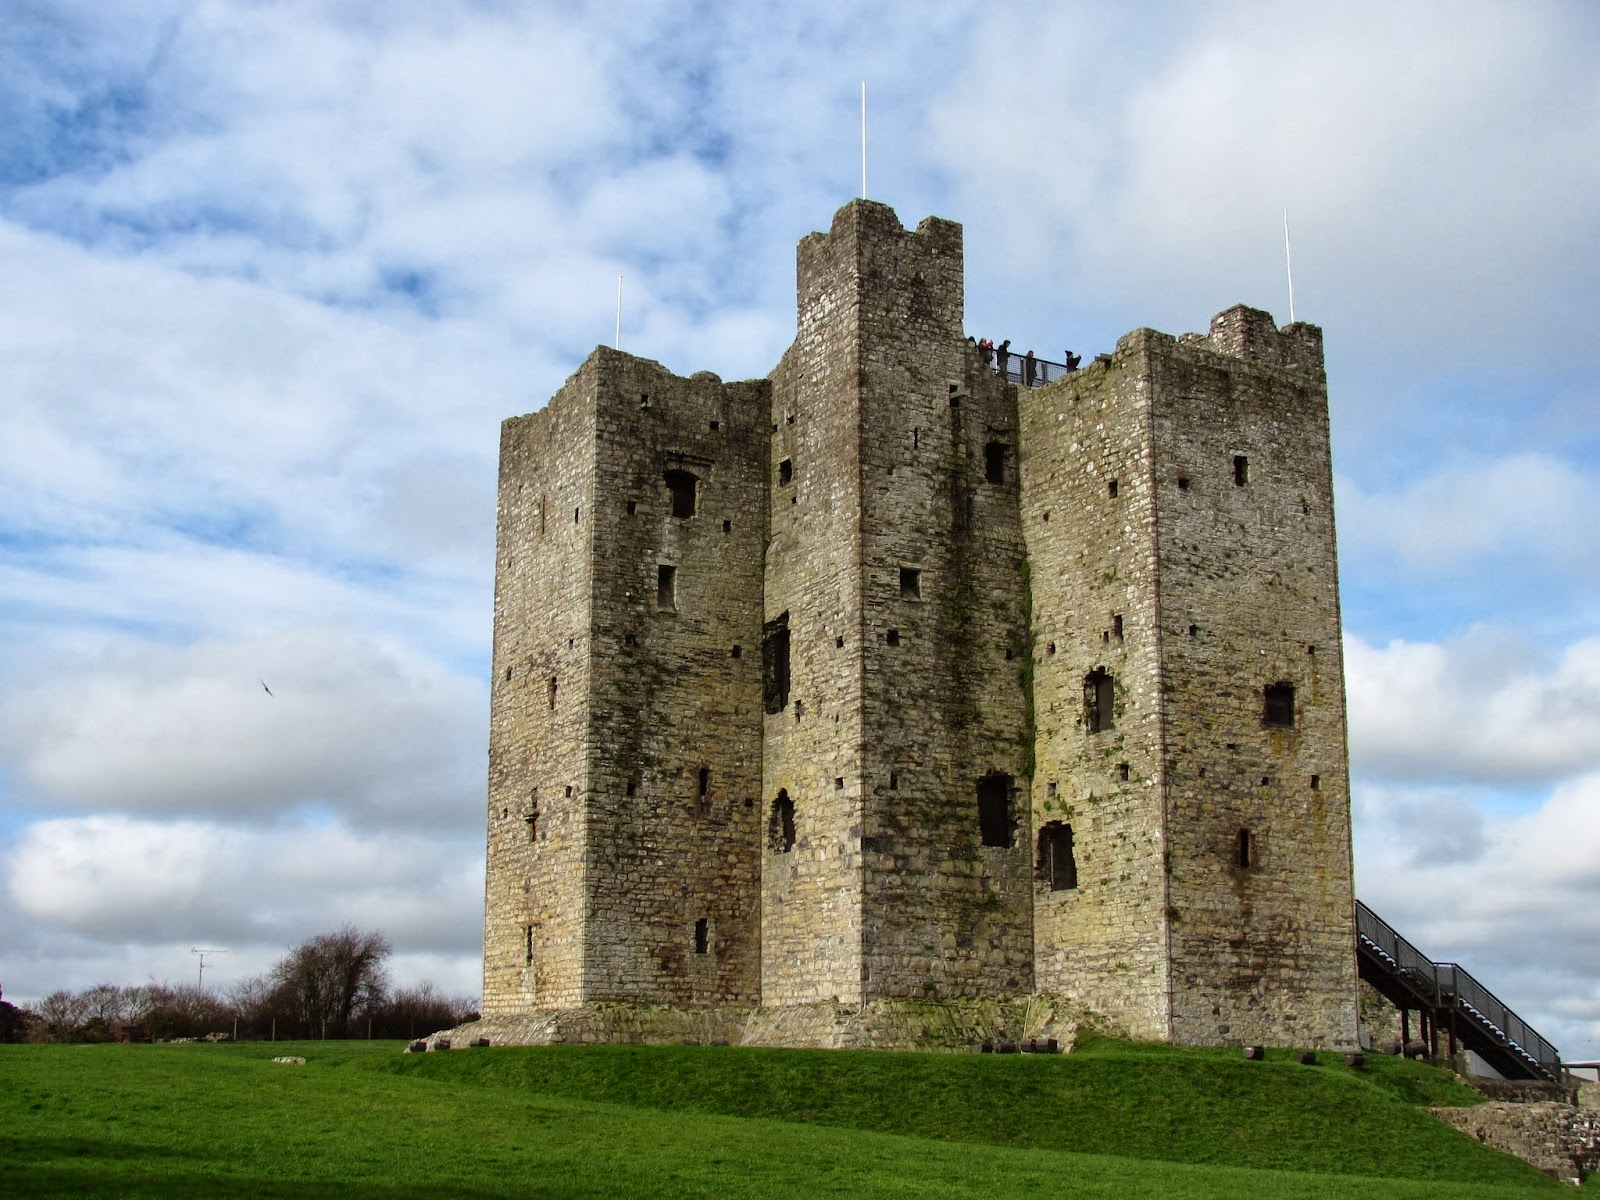 The keep of Trim Castle in Trim, Ireland